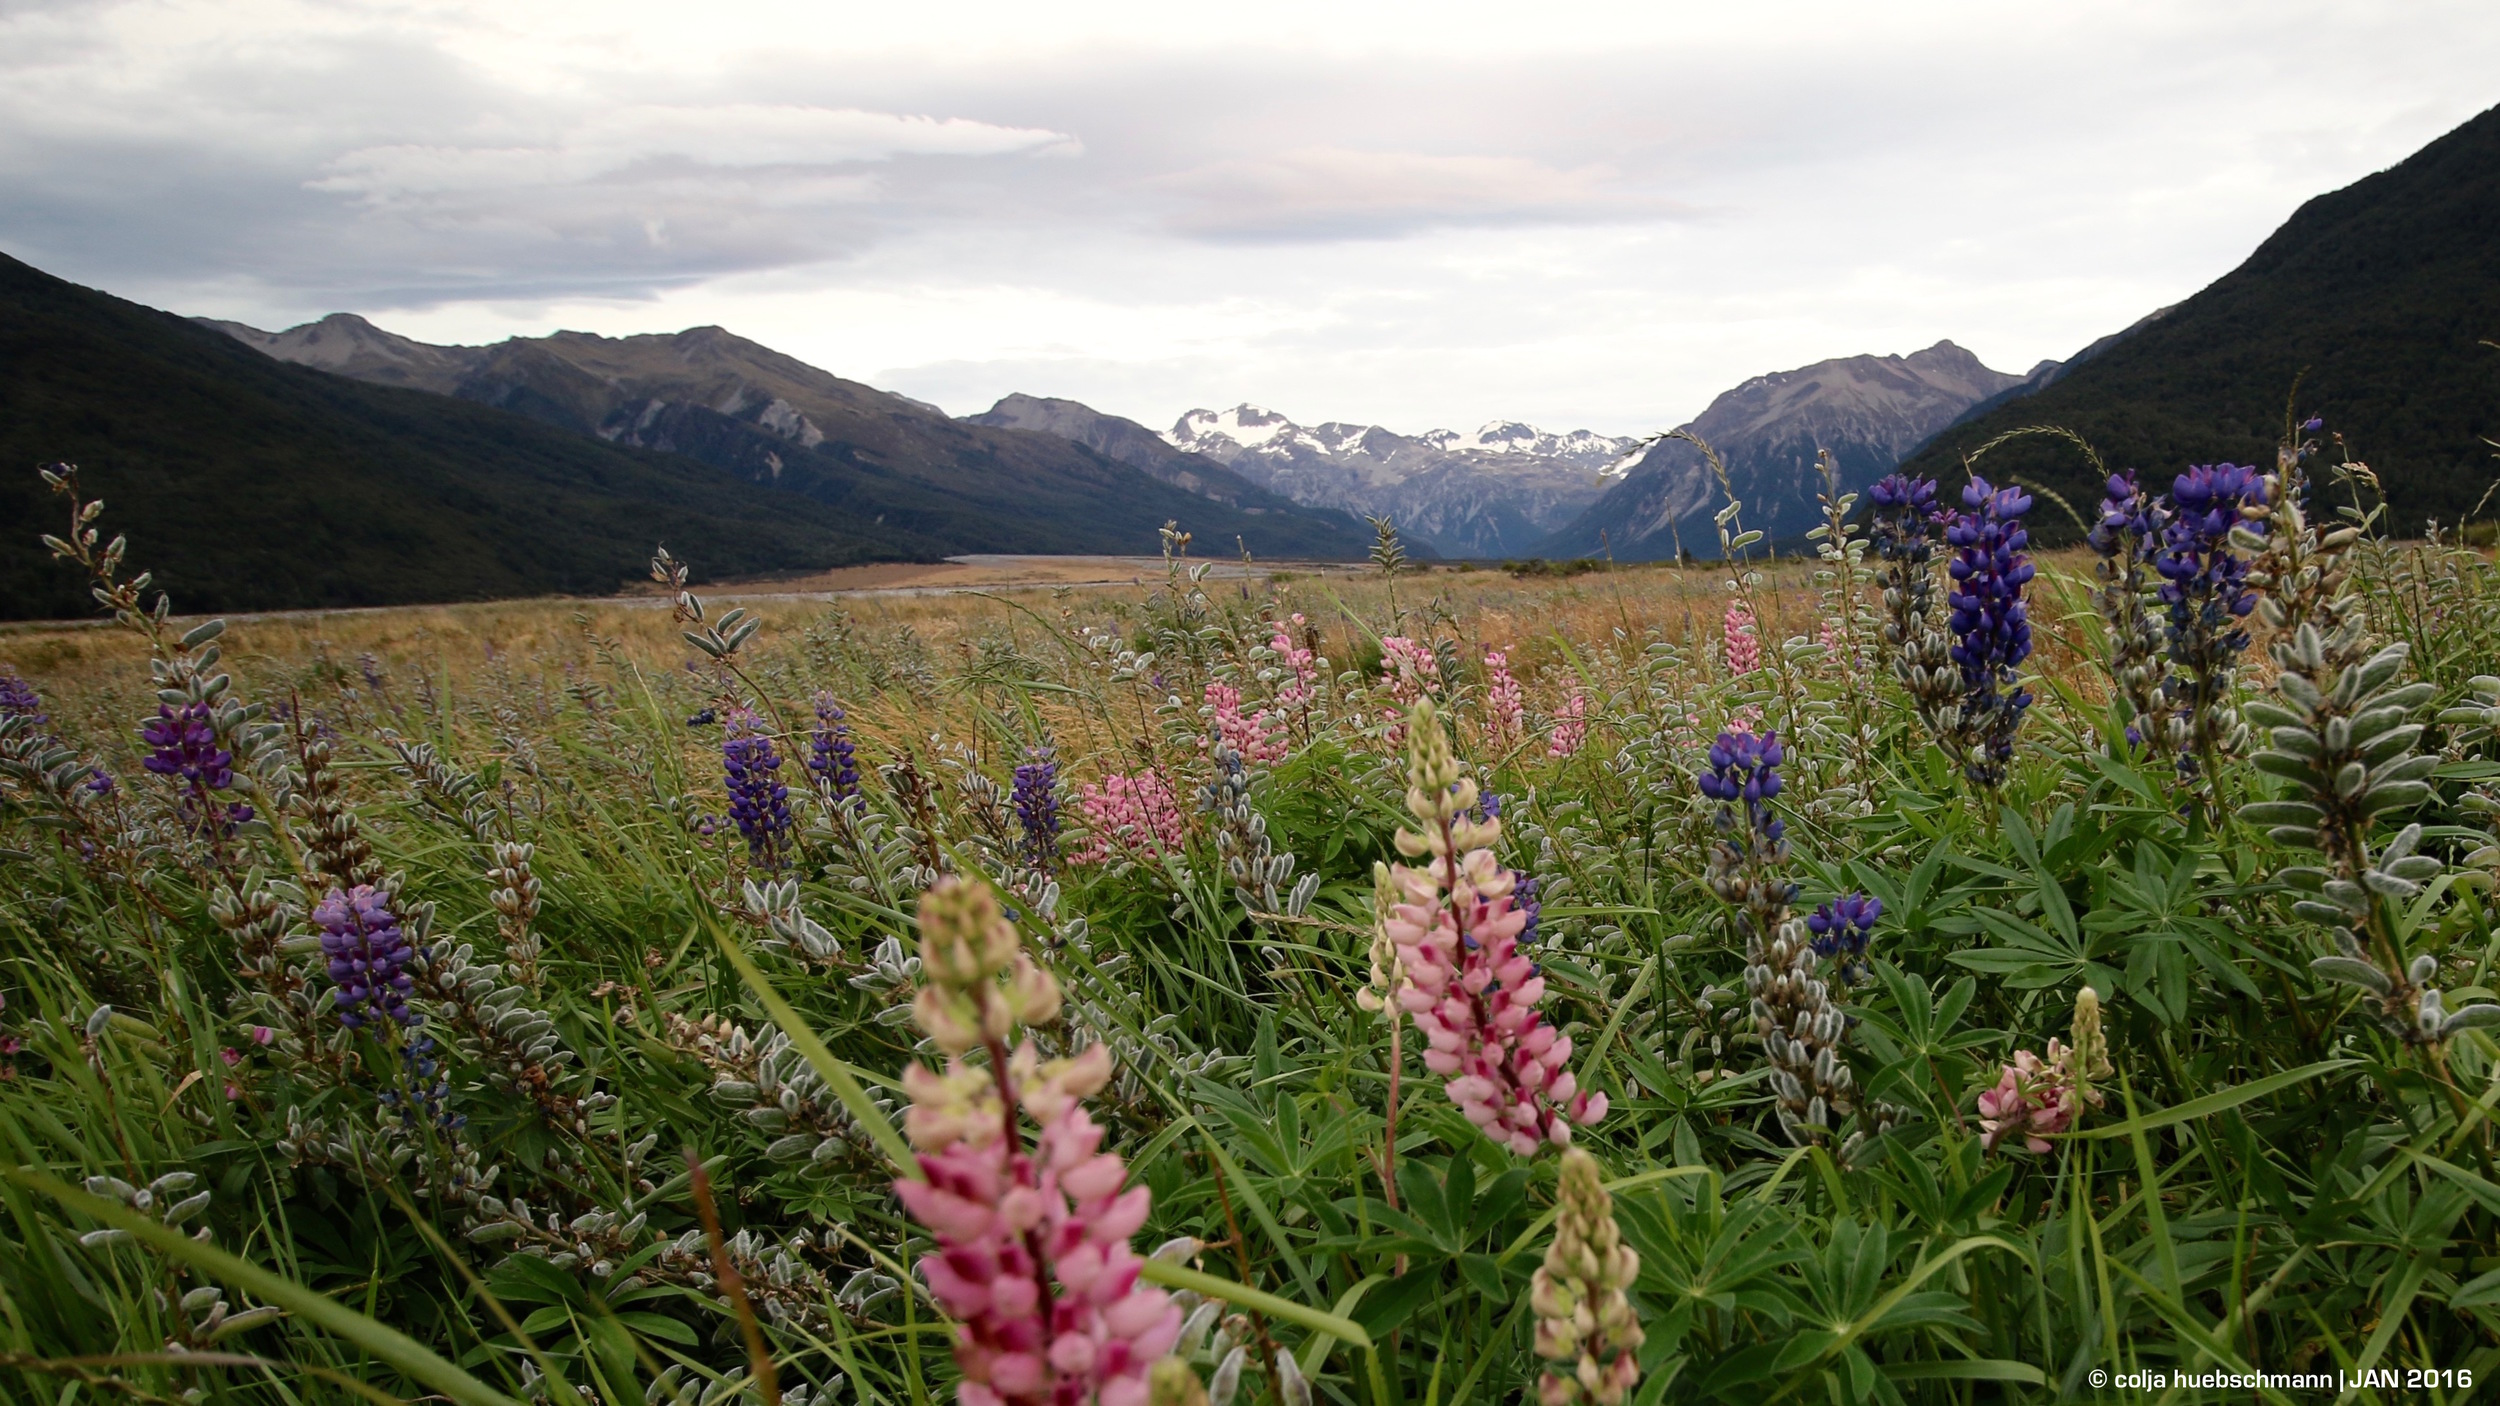 Lupine flowers at Arthur's Pass